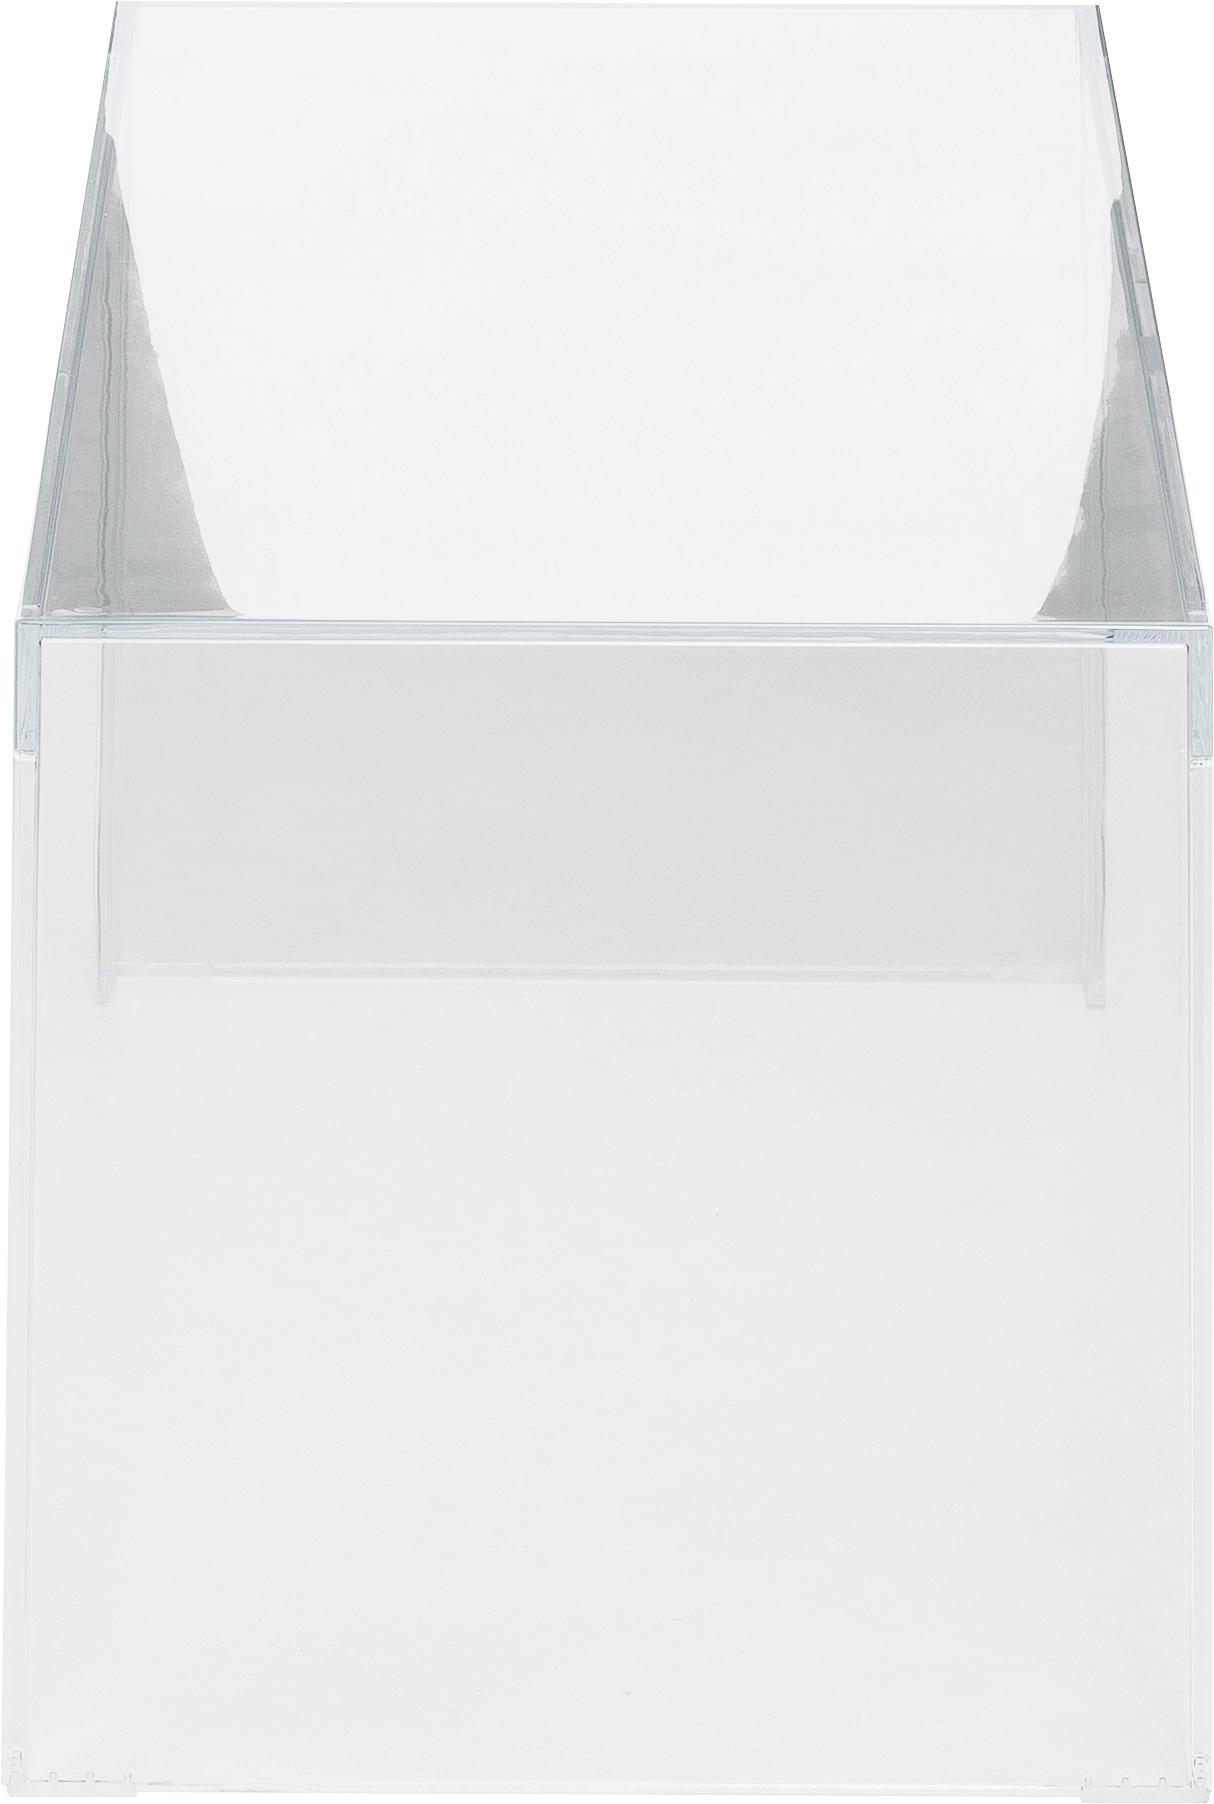 Transparenter Couchtisch Invisible, Kunststoff, Transparent, 120 x 40 cm